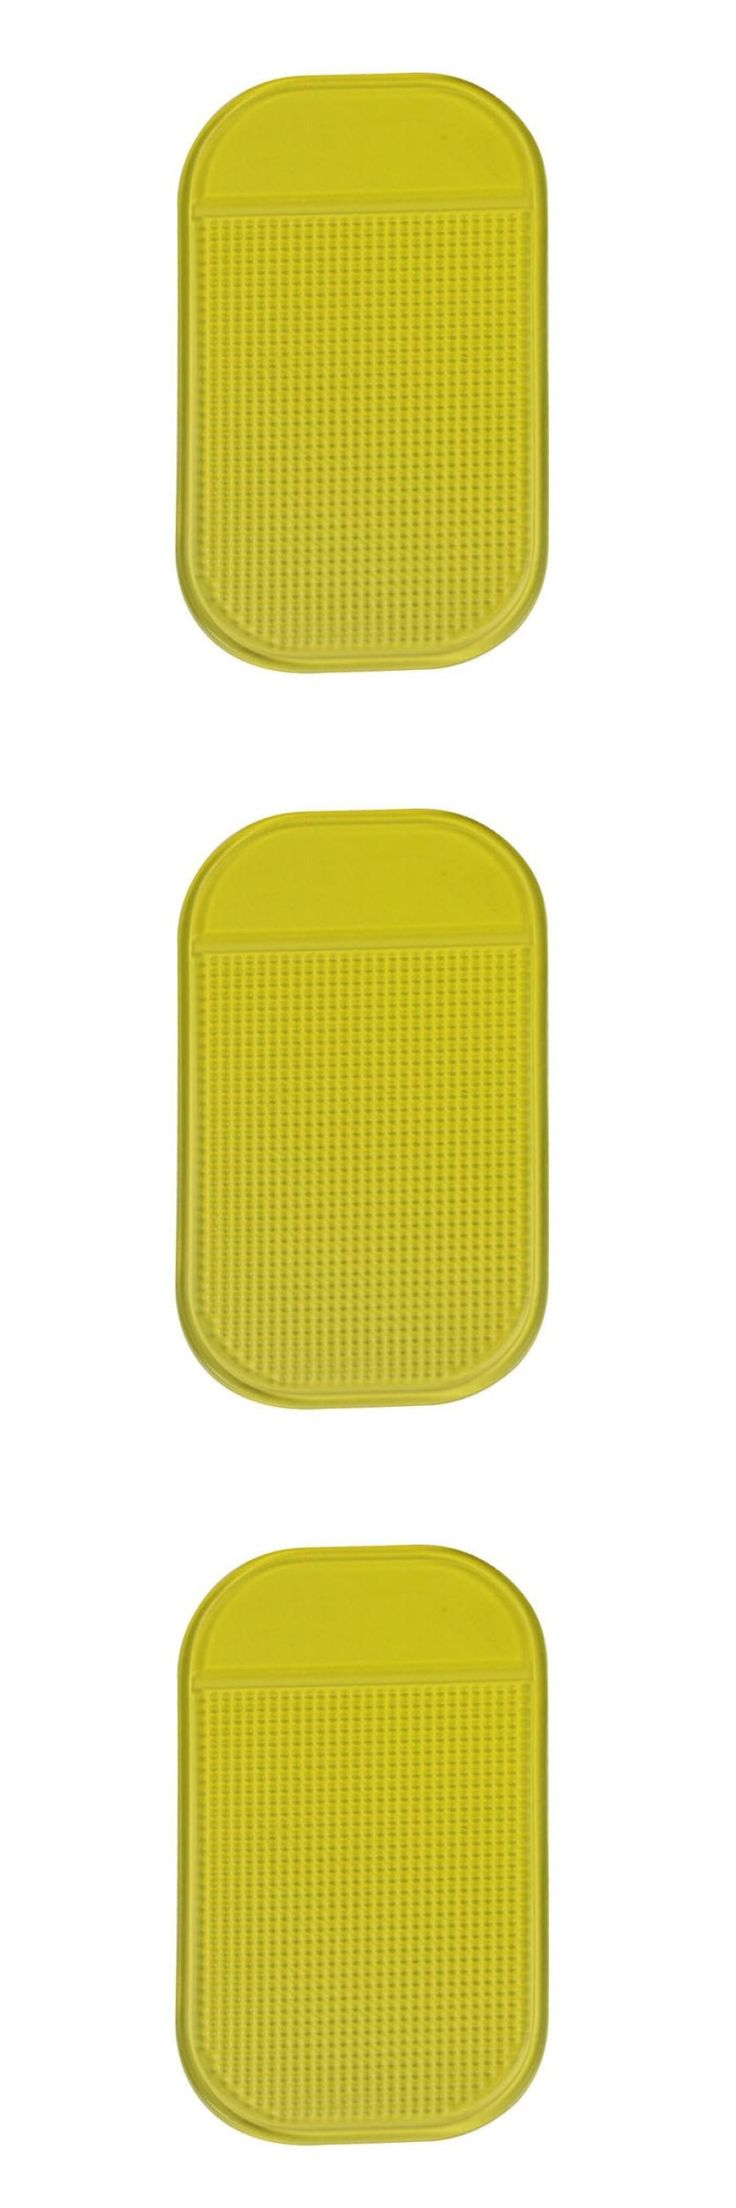 Car Dashboard Holder Non-slip Mat For GPS Mobile Phone Sticky Pad Anti-Slip Mat  Yellow Dropshipping Aug9